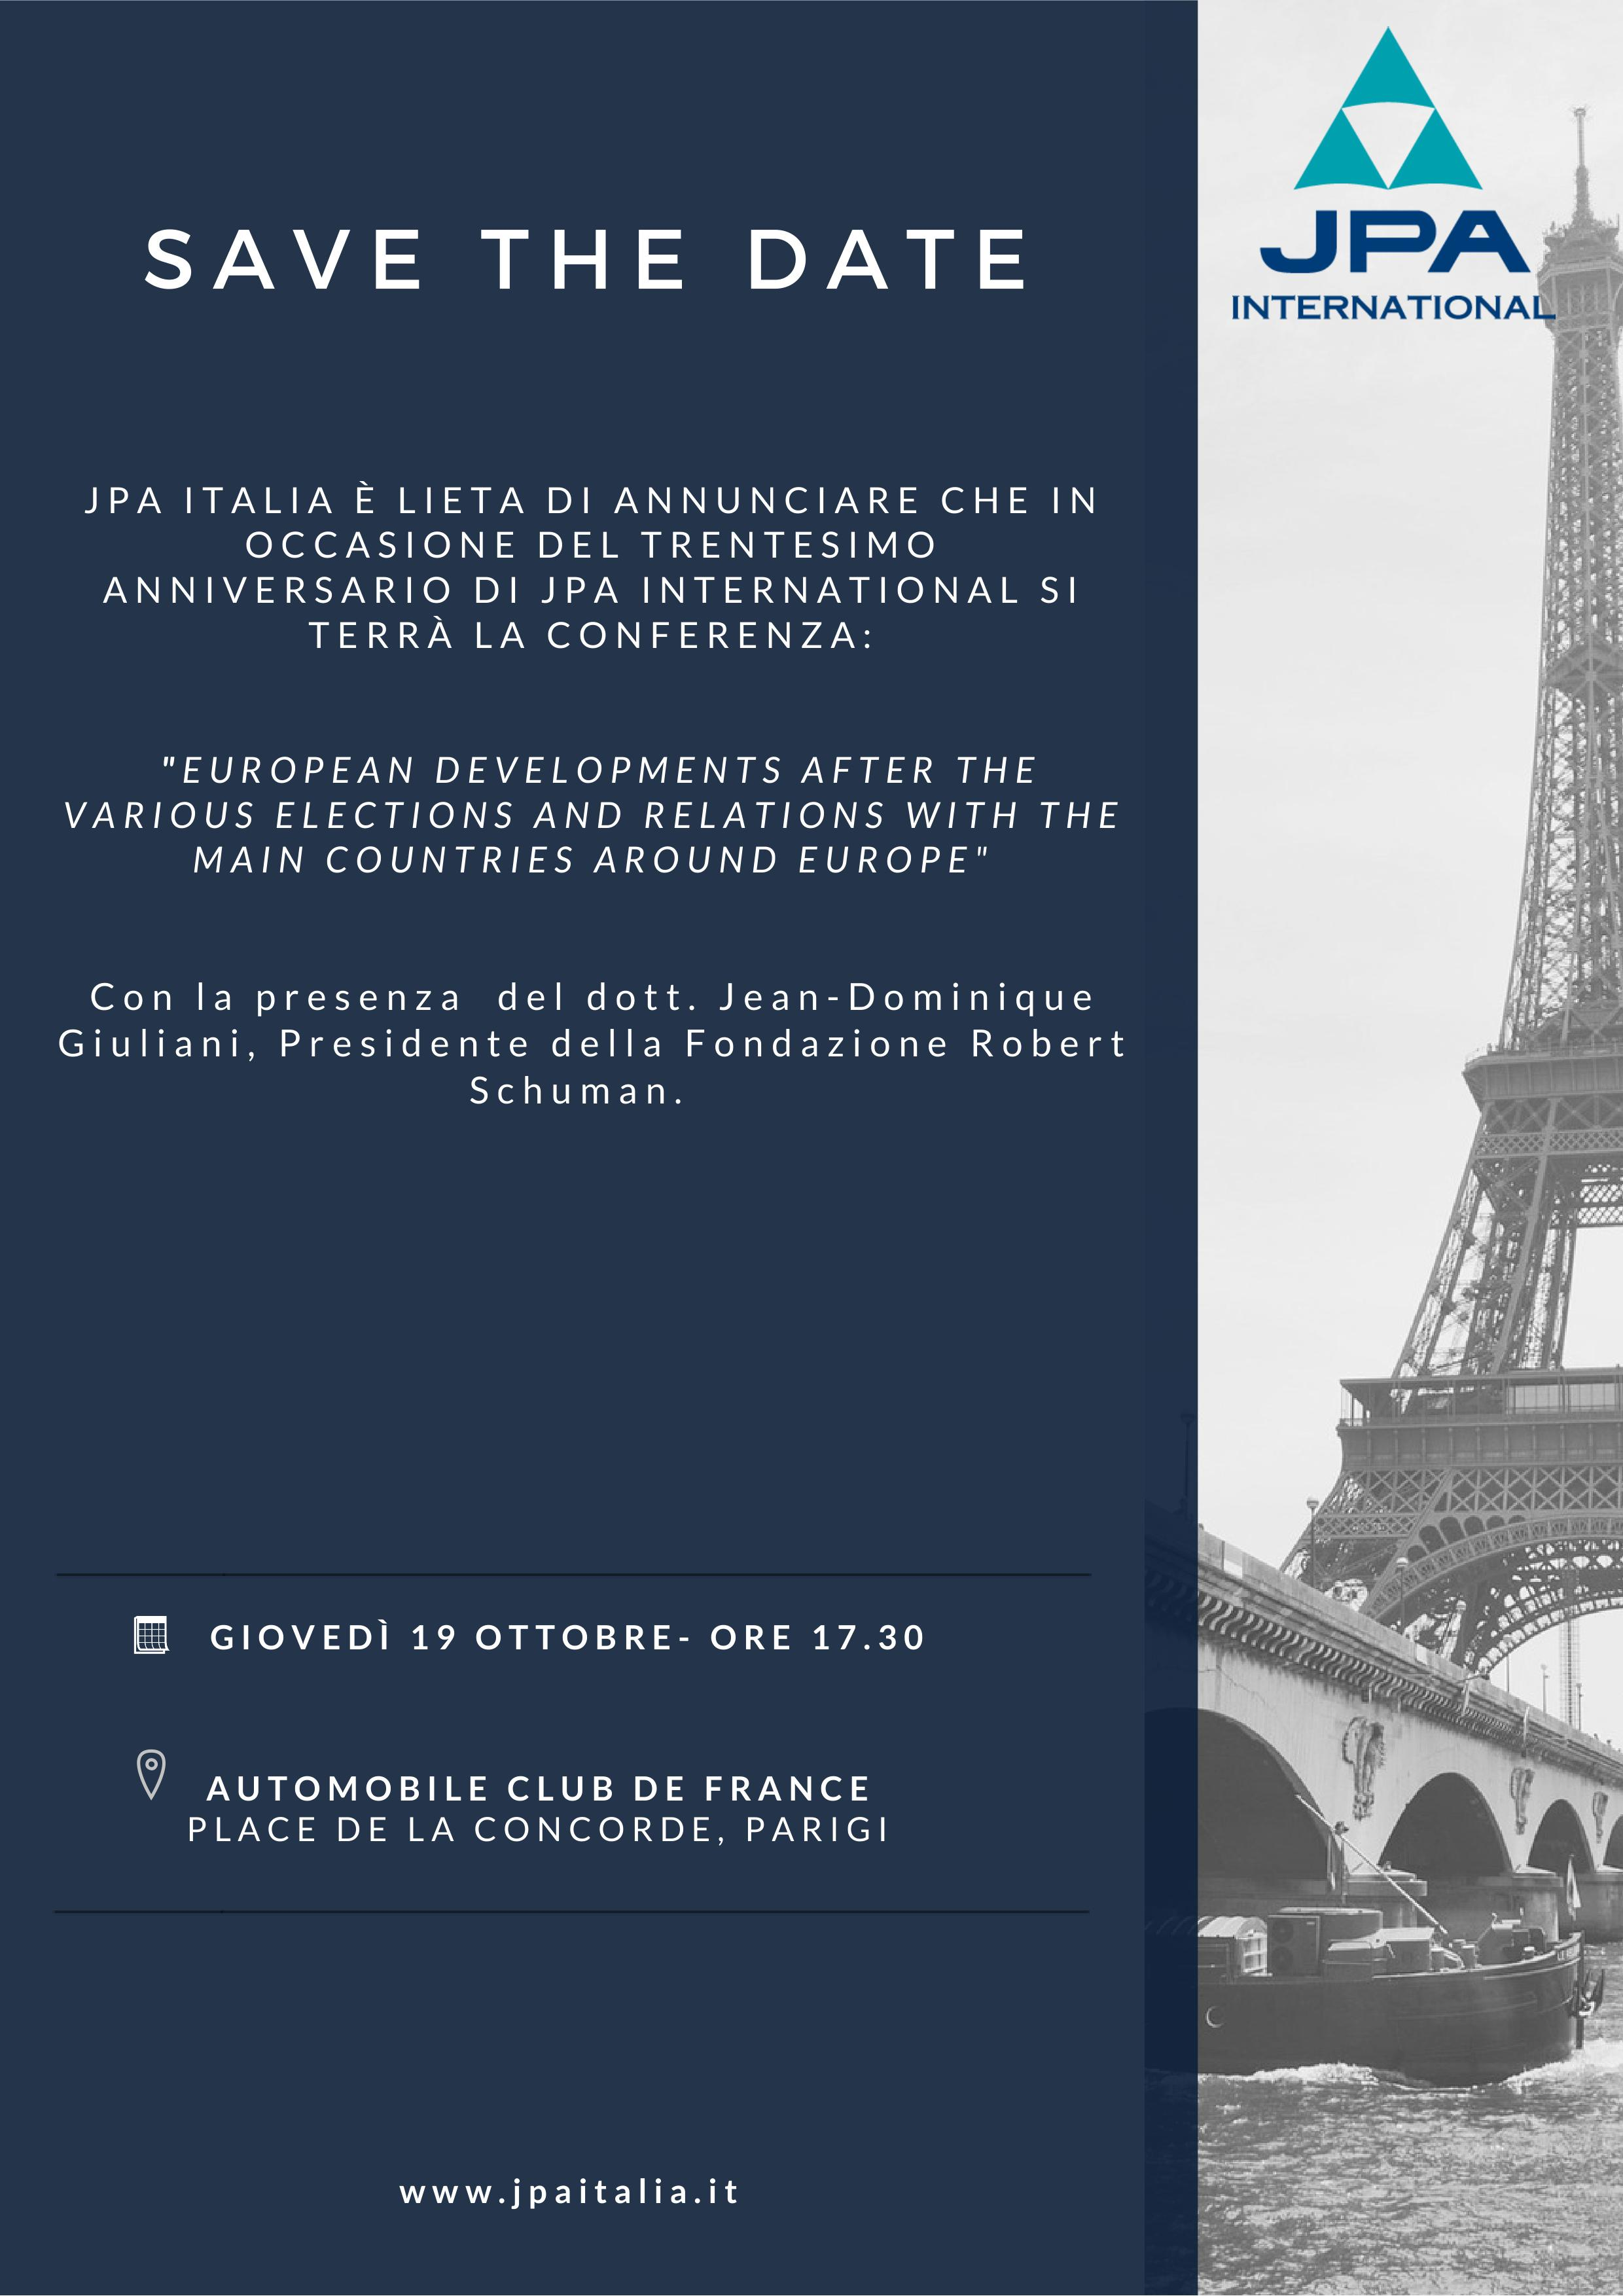 JPA Italia - SAVE THE DATE  - 19 ottore 2017